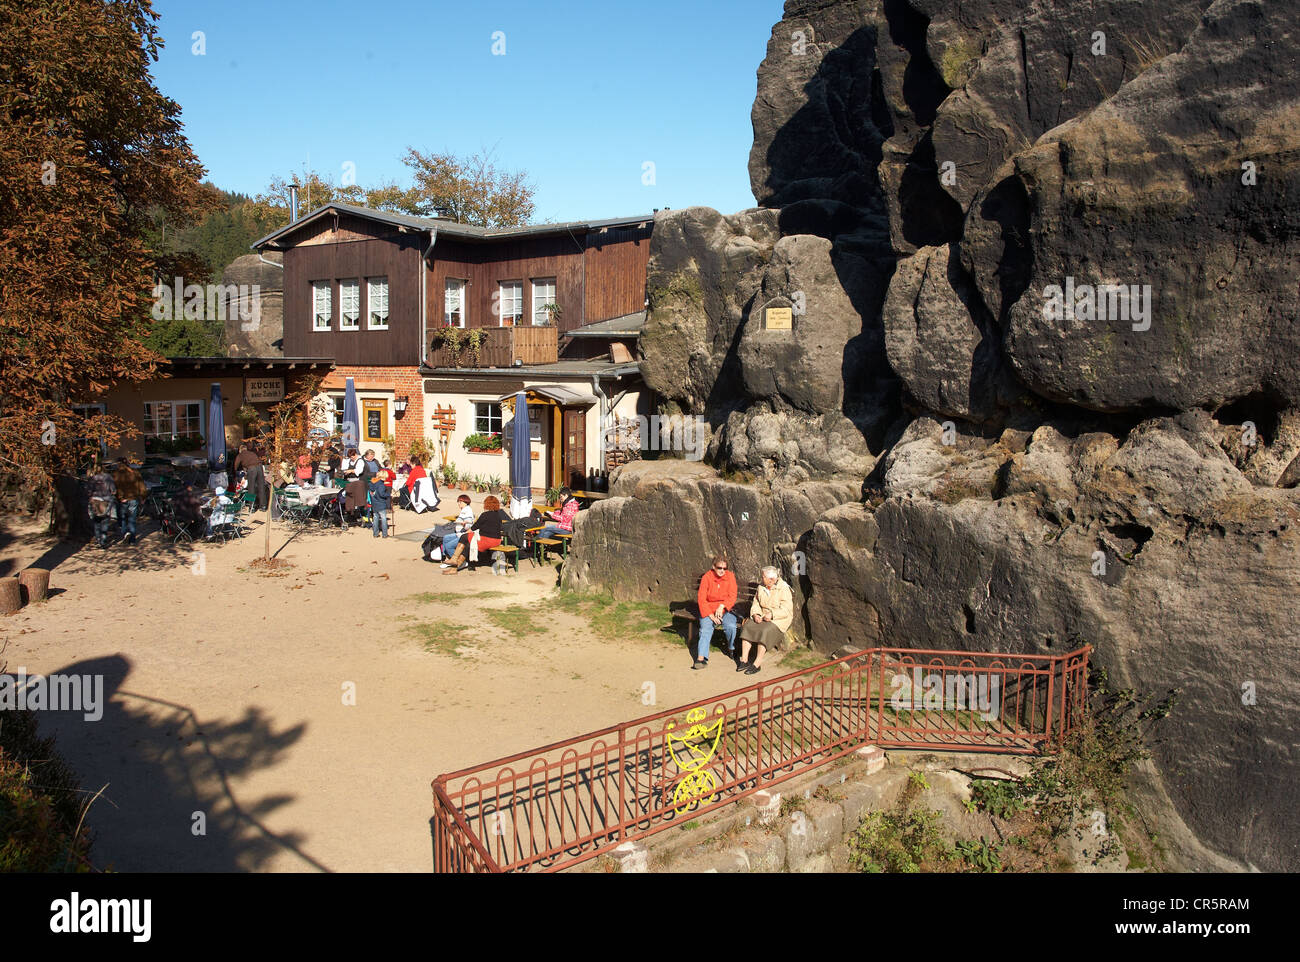 Restaurant on the Nonnenfelsen rock, autumn landscape, sandstone and rock climbing, Jonsdorf the Zittauer Gebirge Stock Photo